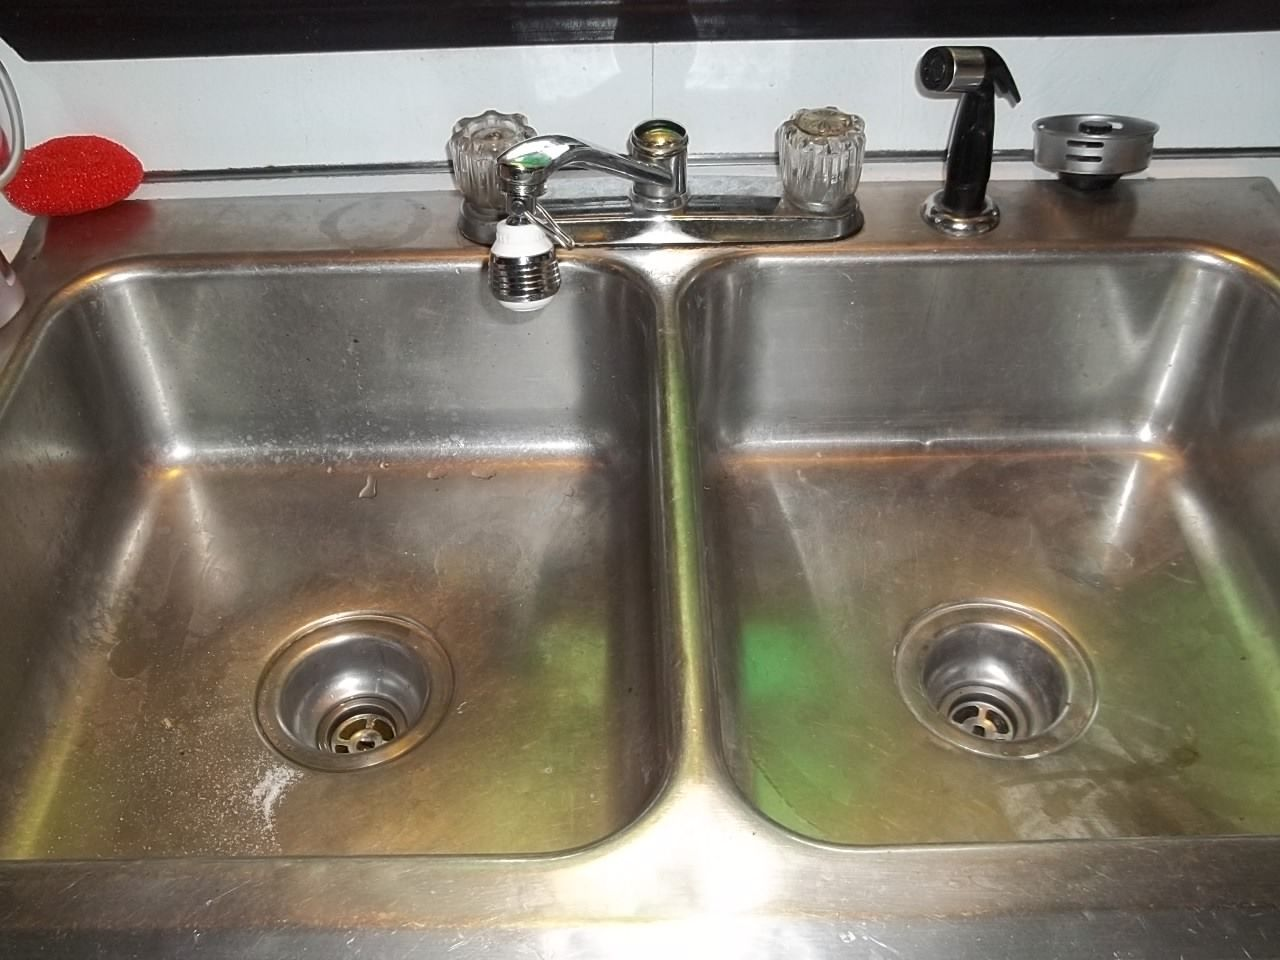 Uncloggedkitchensink With Images Sink Sink Drain Kitchen